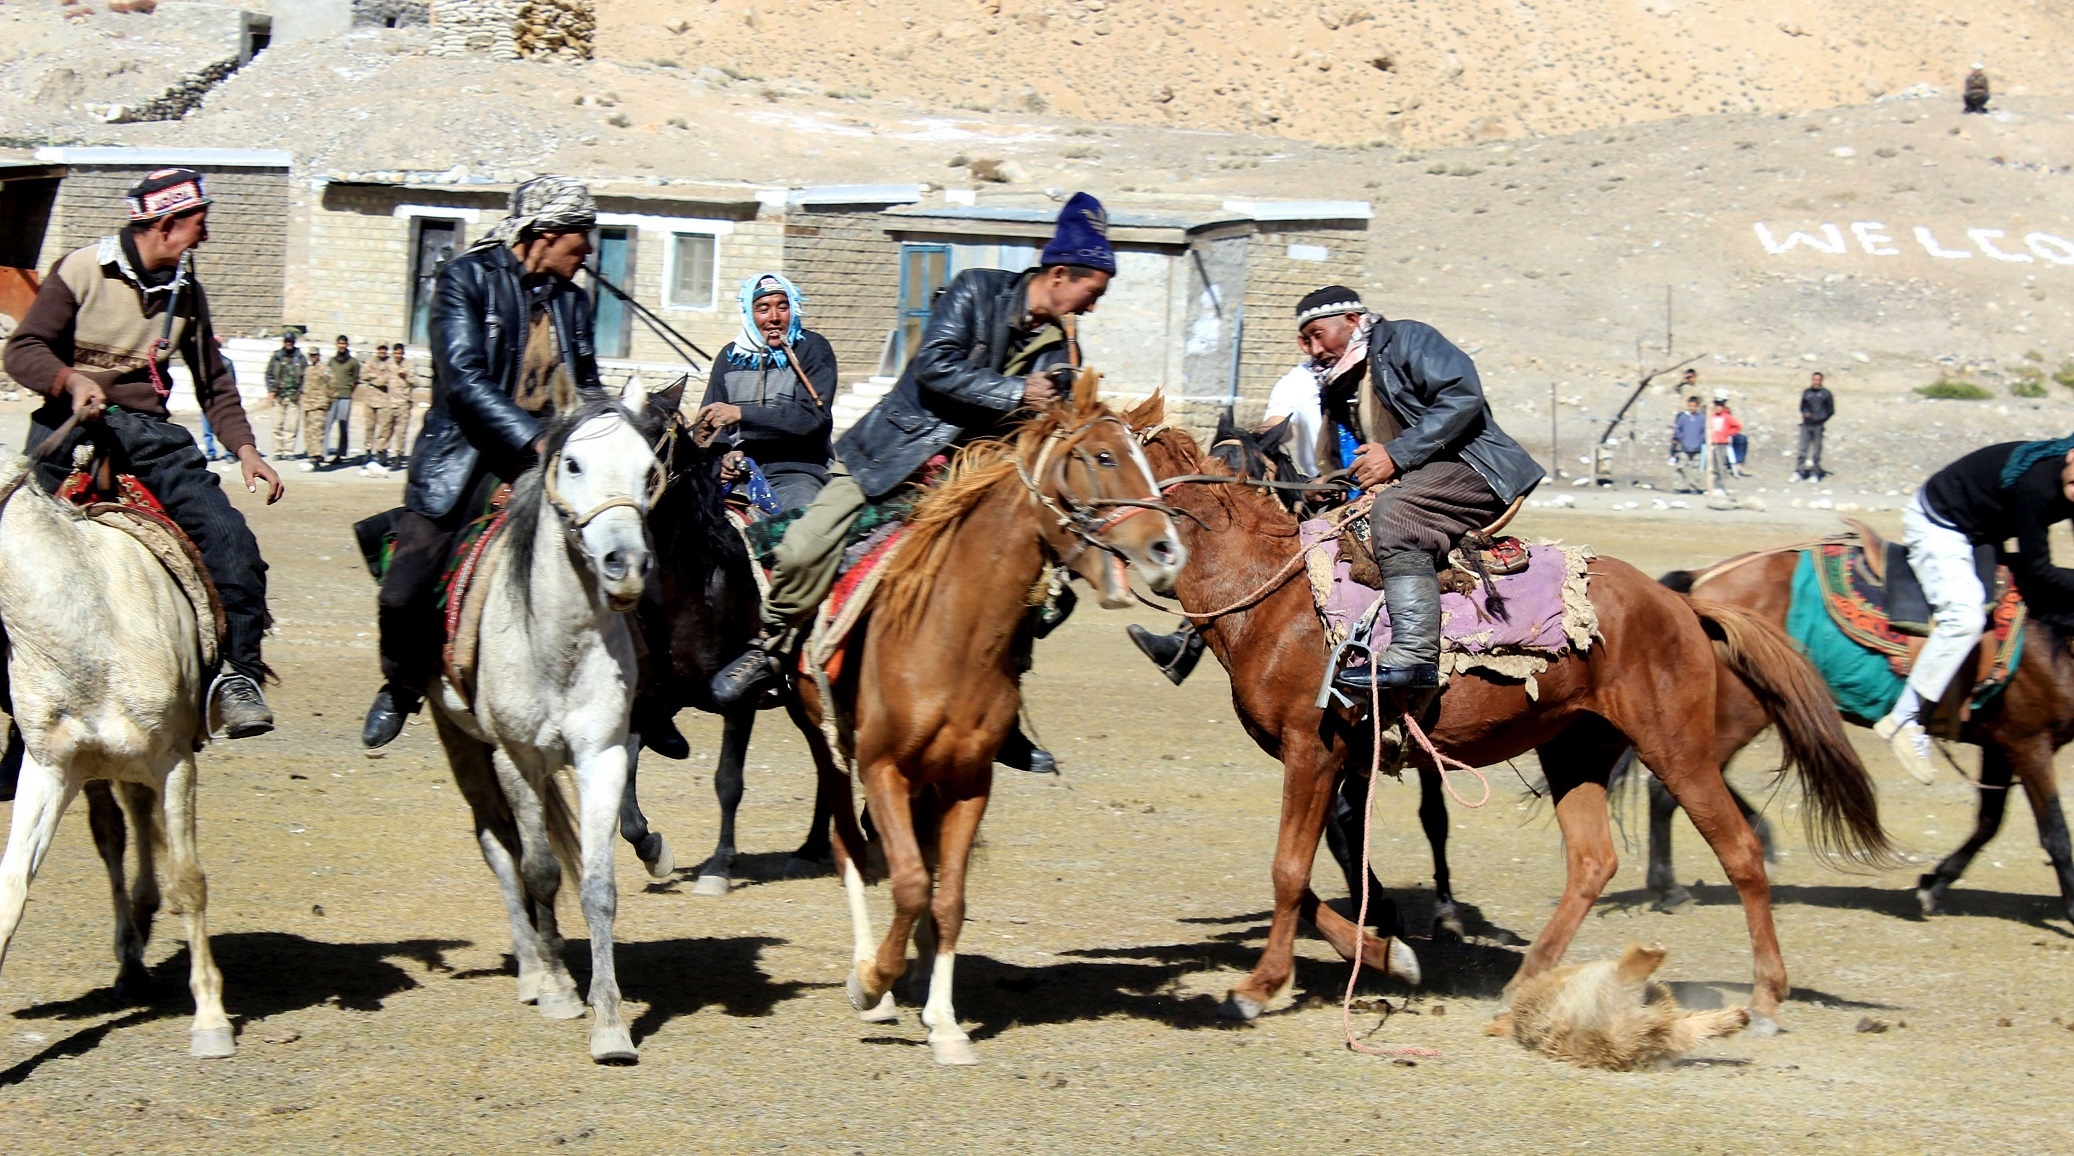 Players from the Wakhn region busy in playing Buzkashi, a traditional game played on horses